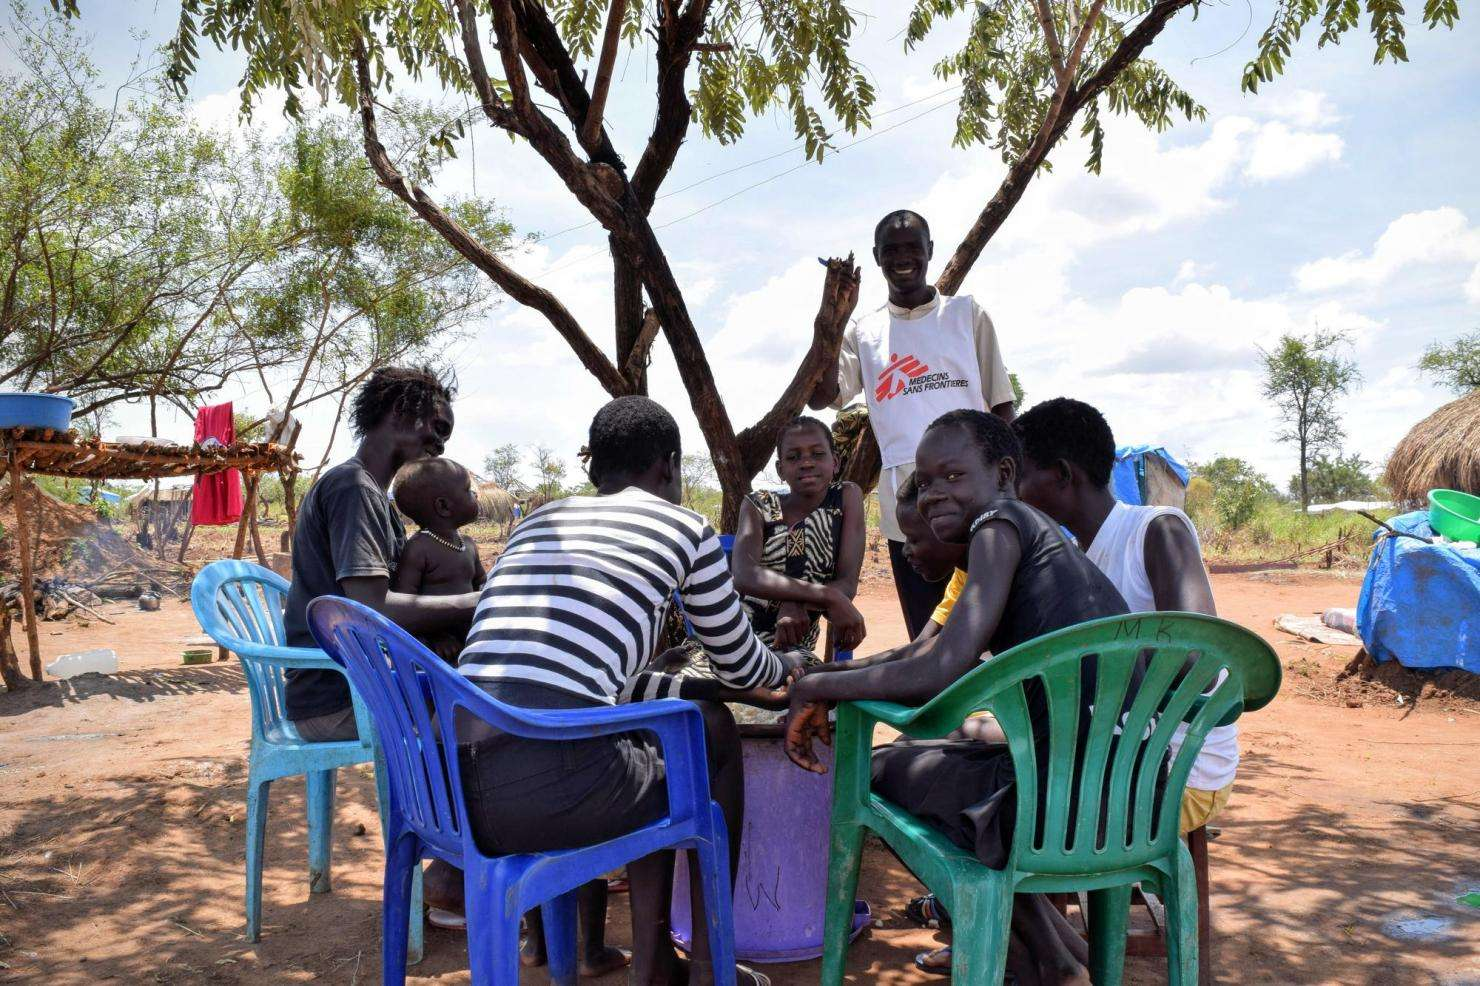 Refugees from South Sudan eat and drink in Bidi Bidi refugee camp in Northern Uganda.